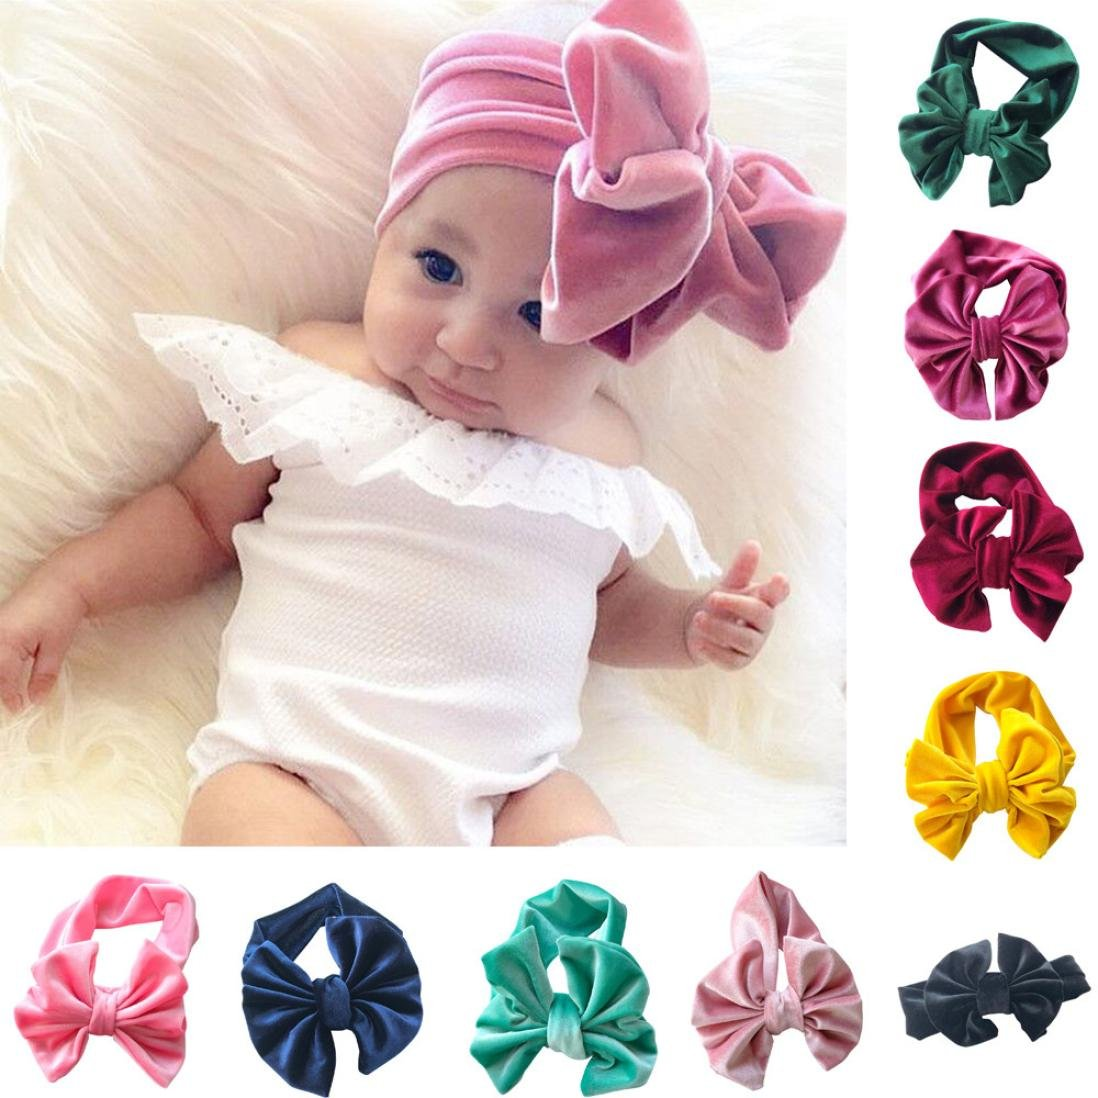 Sunbona Headband Baby,Toddler Girls Bowknot Turban Velvet Head Wrap Hair Bands Photography Props Hairband